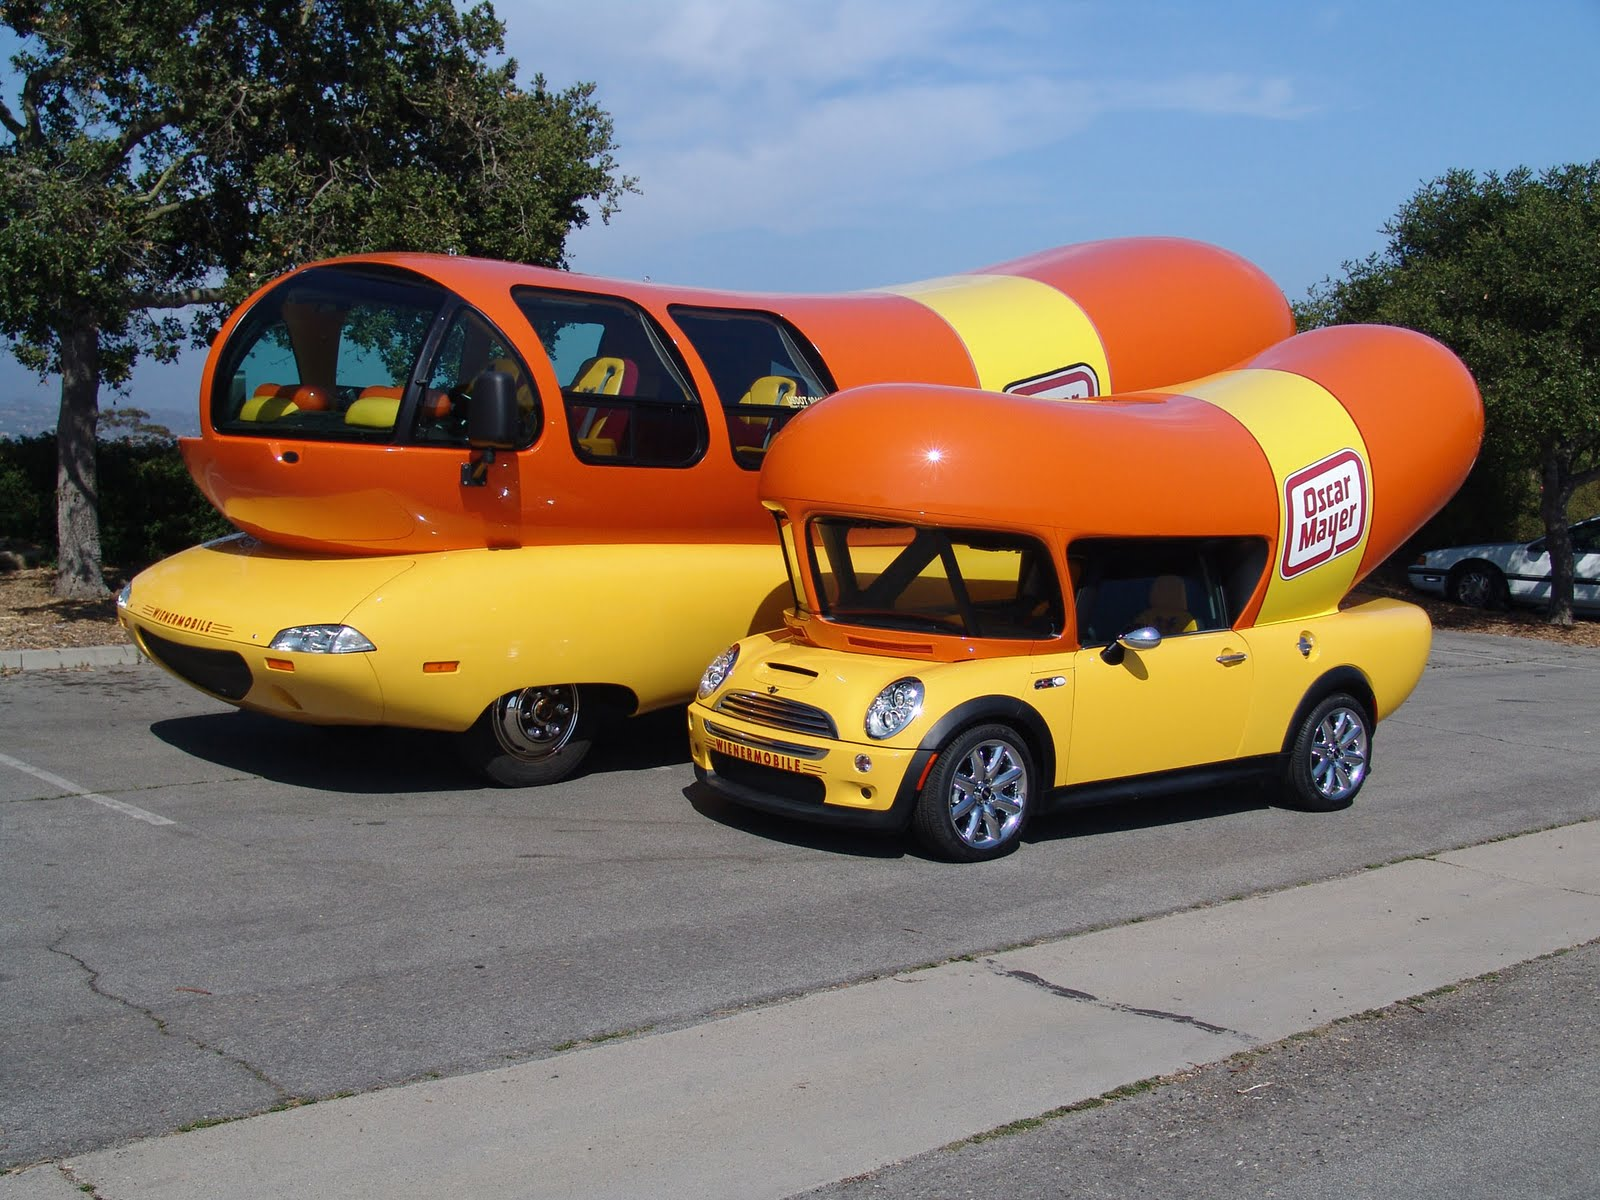 Poisoned Shoes Japan Murder Attempt n 2971628 as well Wienermobile additionally Auto Biografia in addition Creepy vintage further Wienermobile. on oscar mayer weiner car